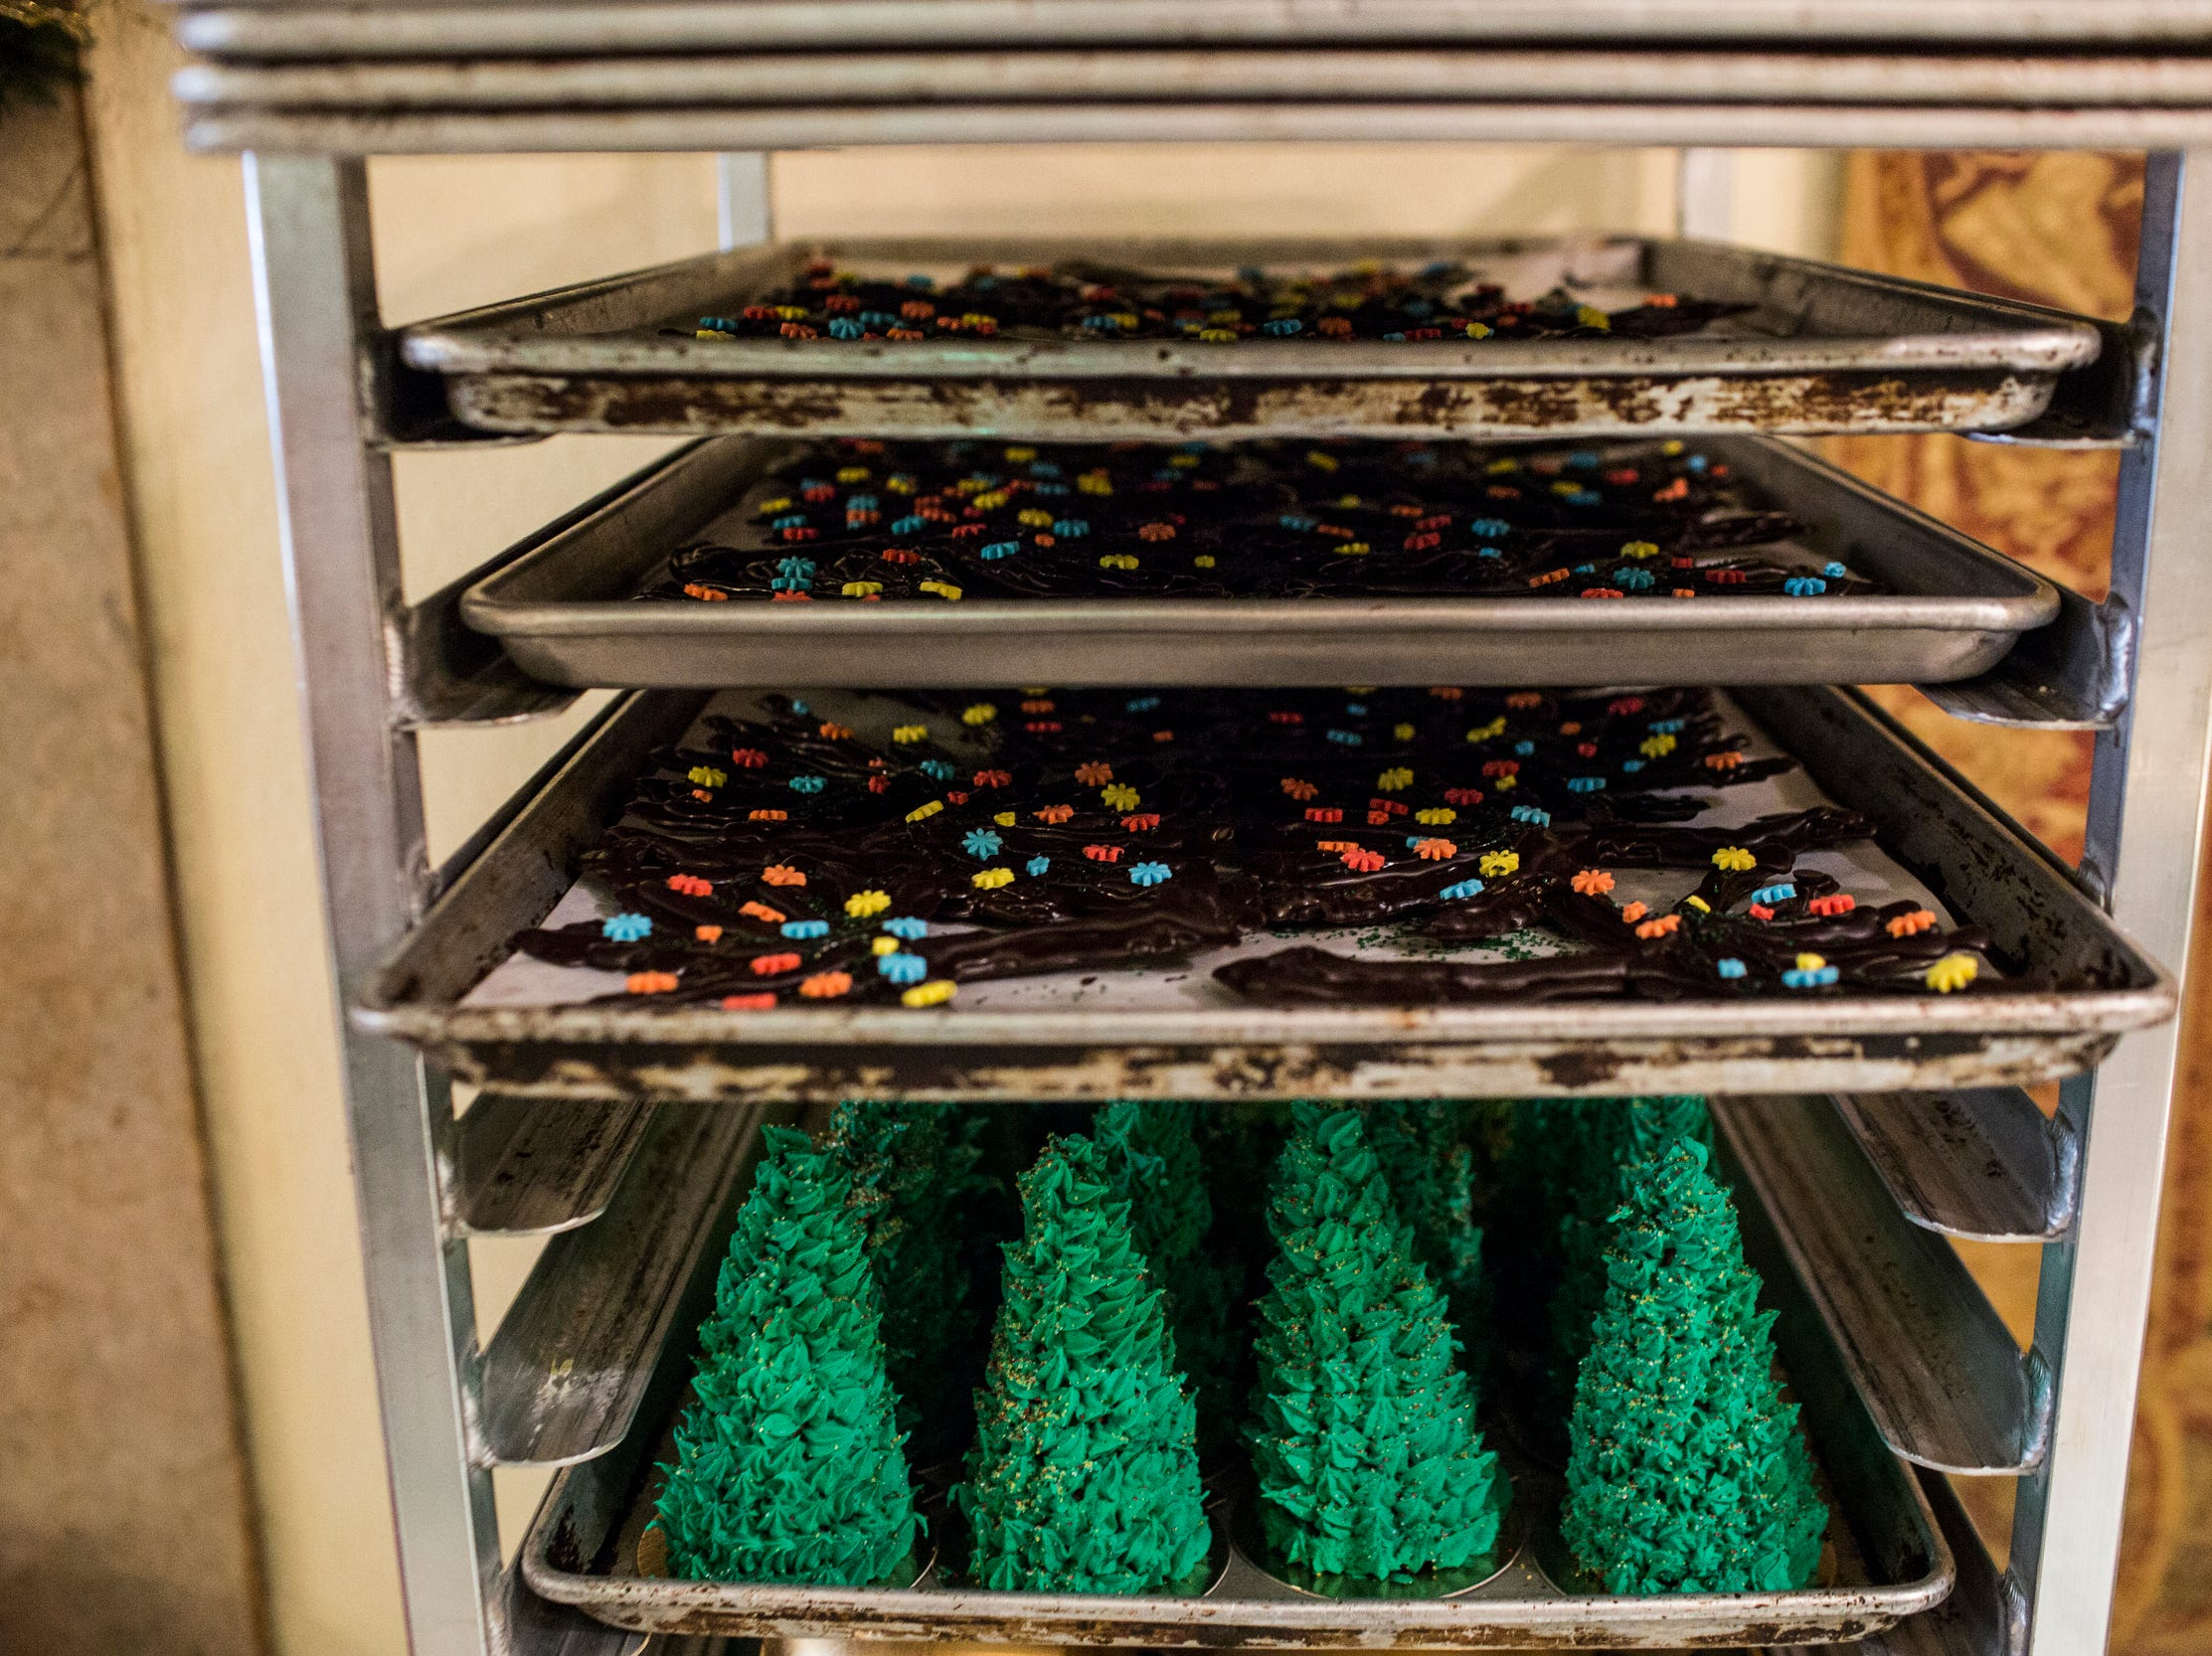 November 20 2018 - Trays of decorations are seen before they're added to the holiday gingerbread display at the Peabody Hotel. Chef Konrad Spitzbart does an elaborate holiday Gingerbread display every year that work is started on months in advance.